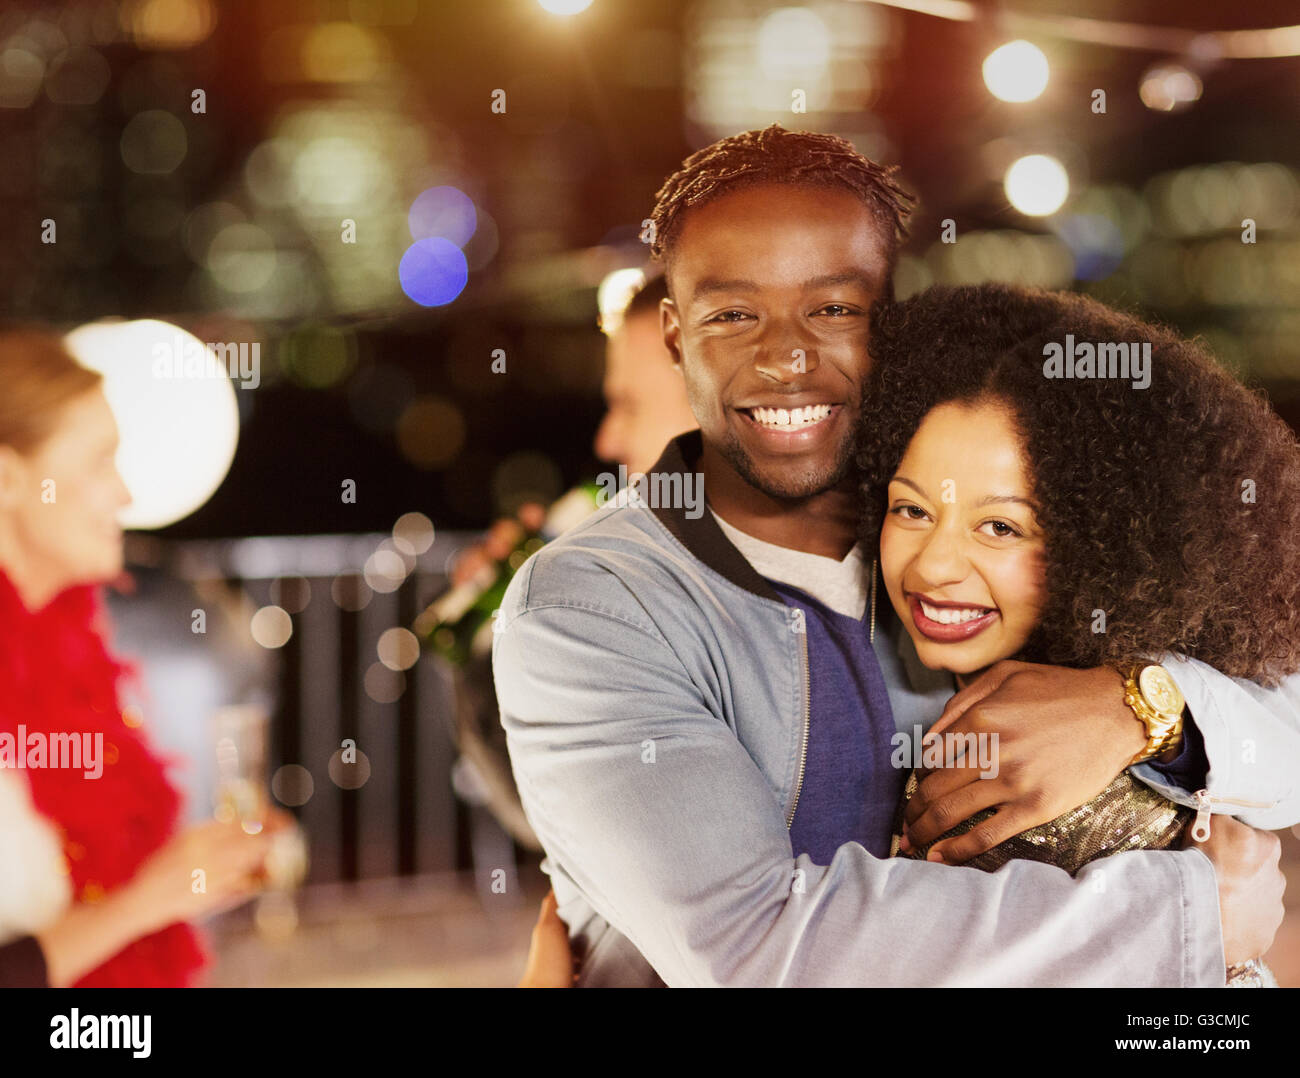 Portrait smiling young couple hugging at party - Stock Image